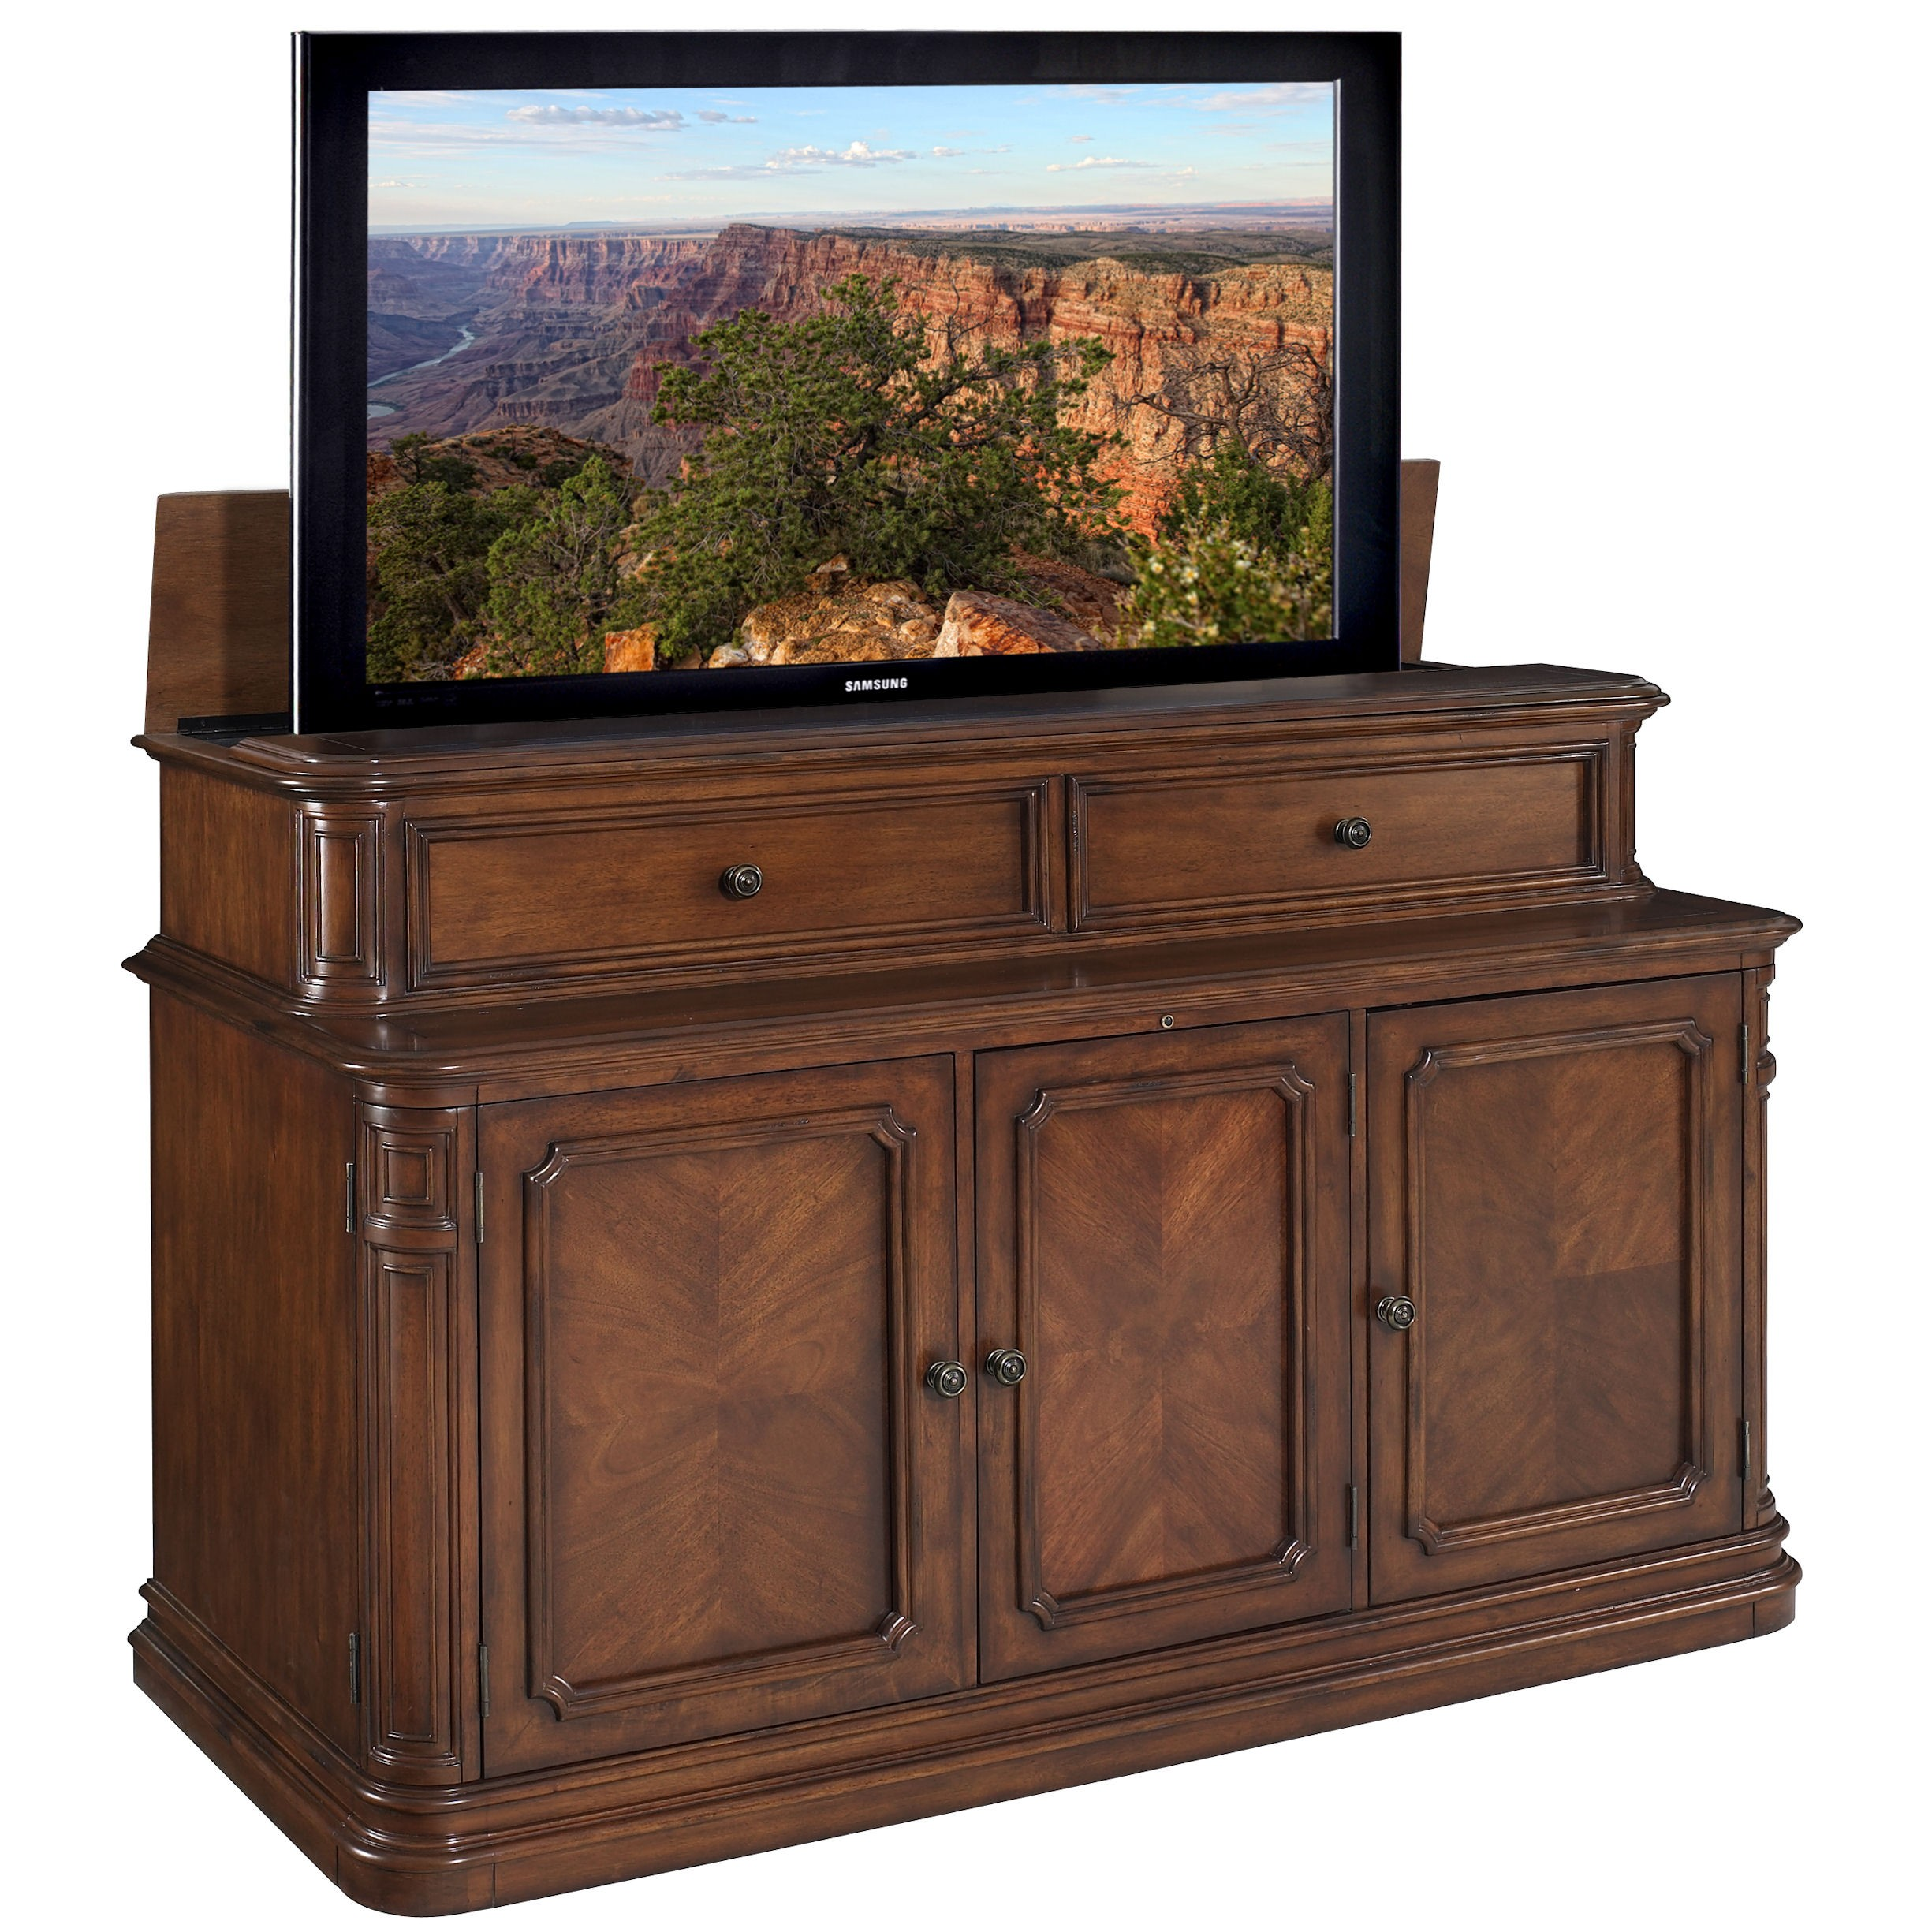 tv excellence cabinets matukewicz television introducing furniture lift blog cabinet jsd lifts